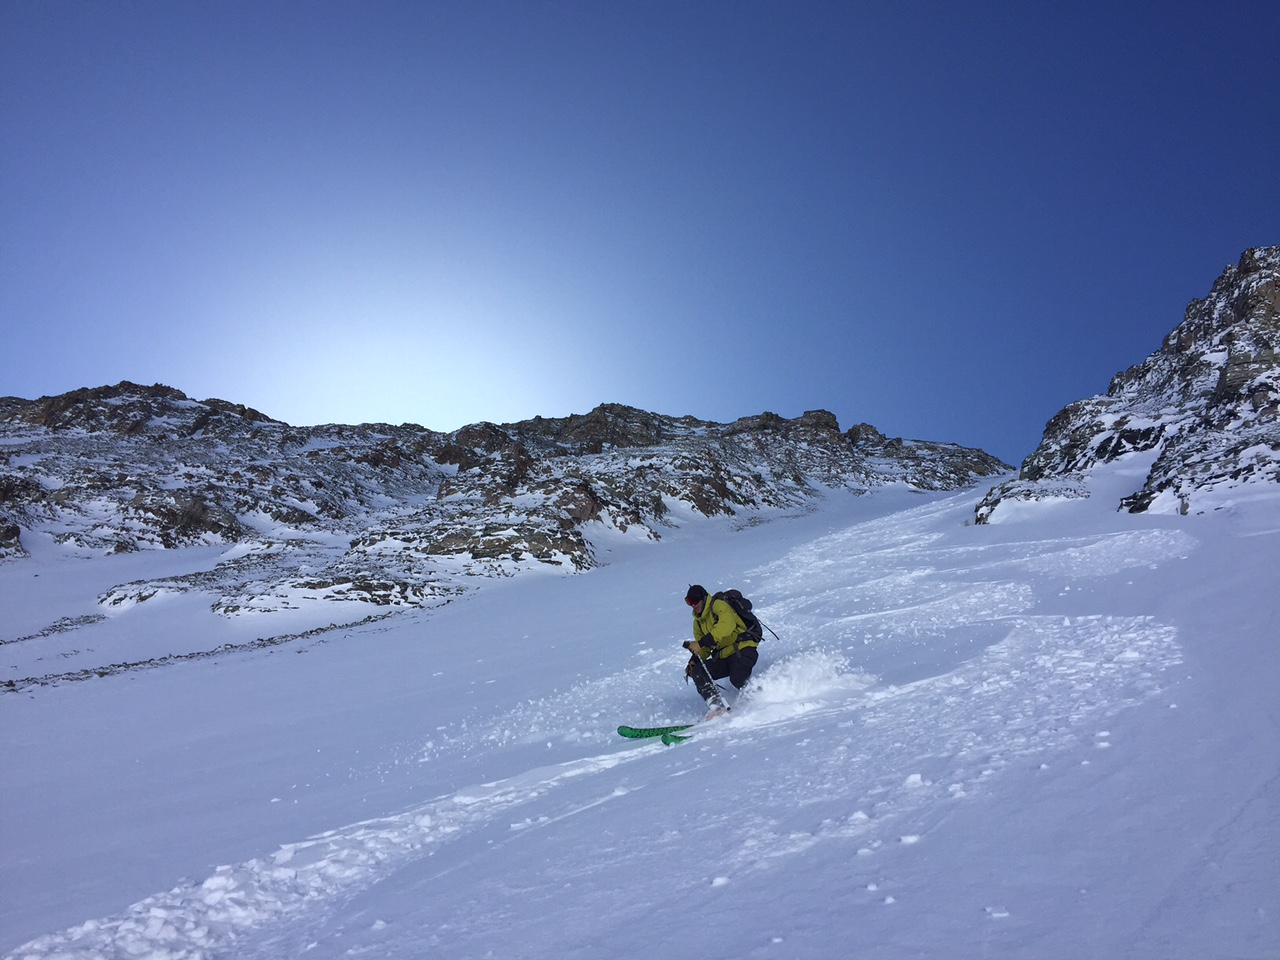 Creamy Turns in the North Couloir